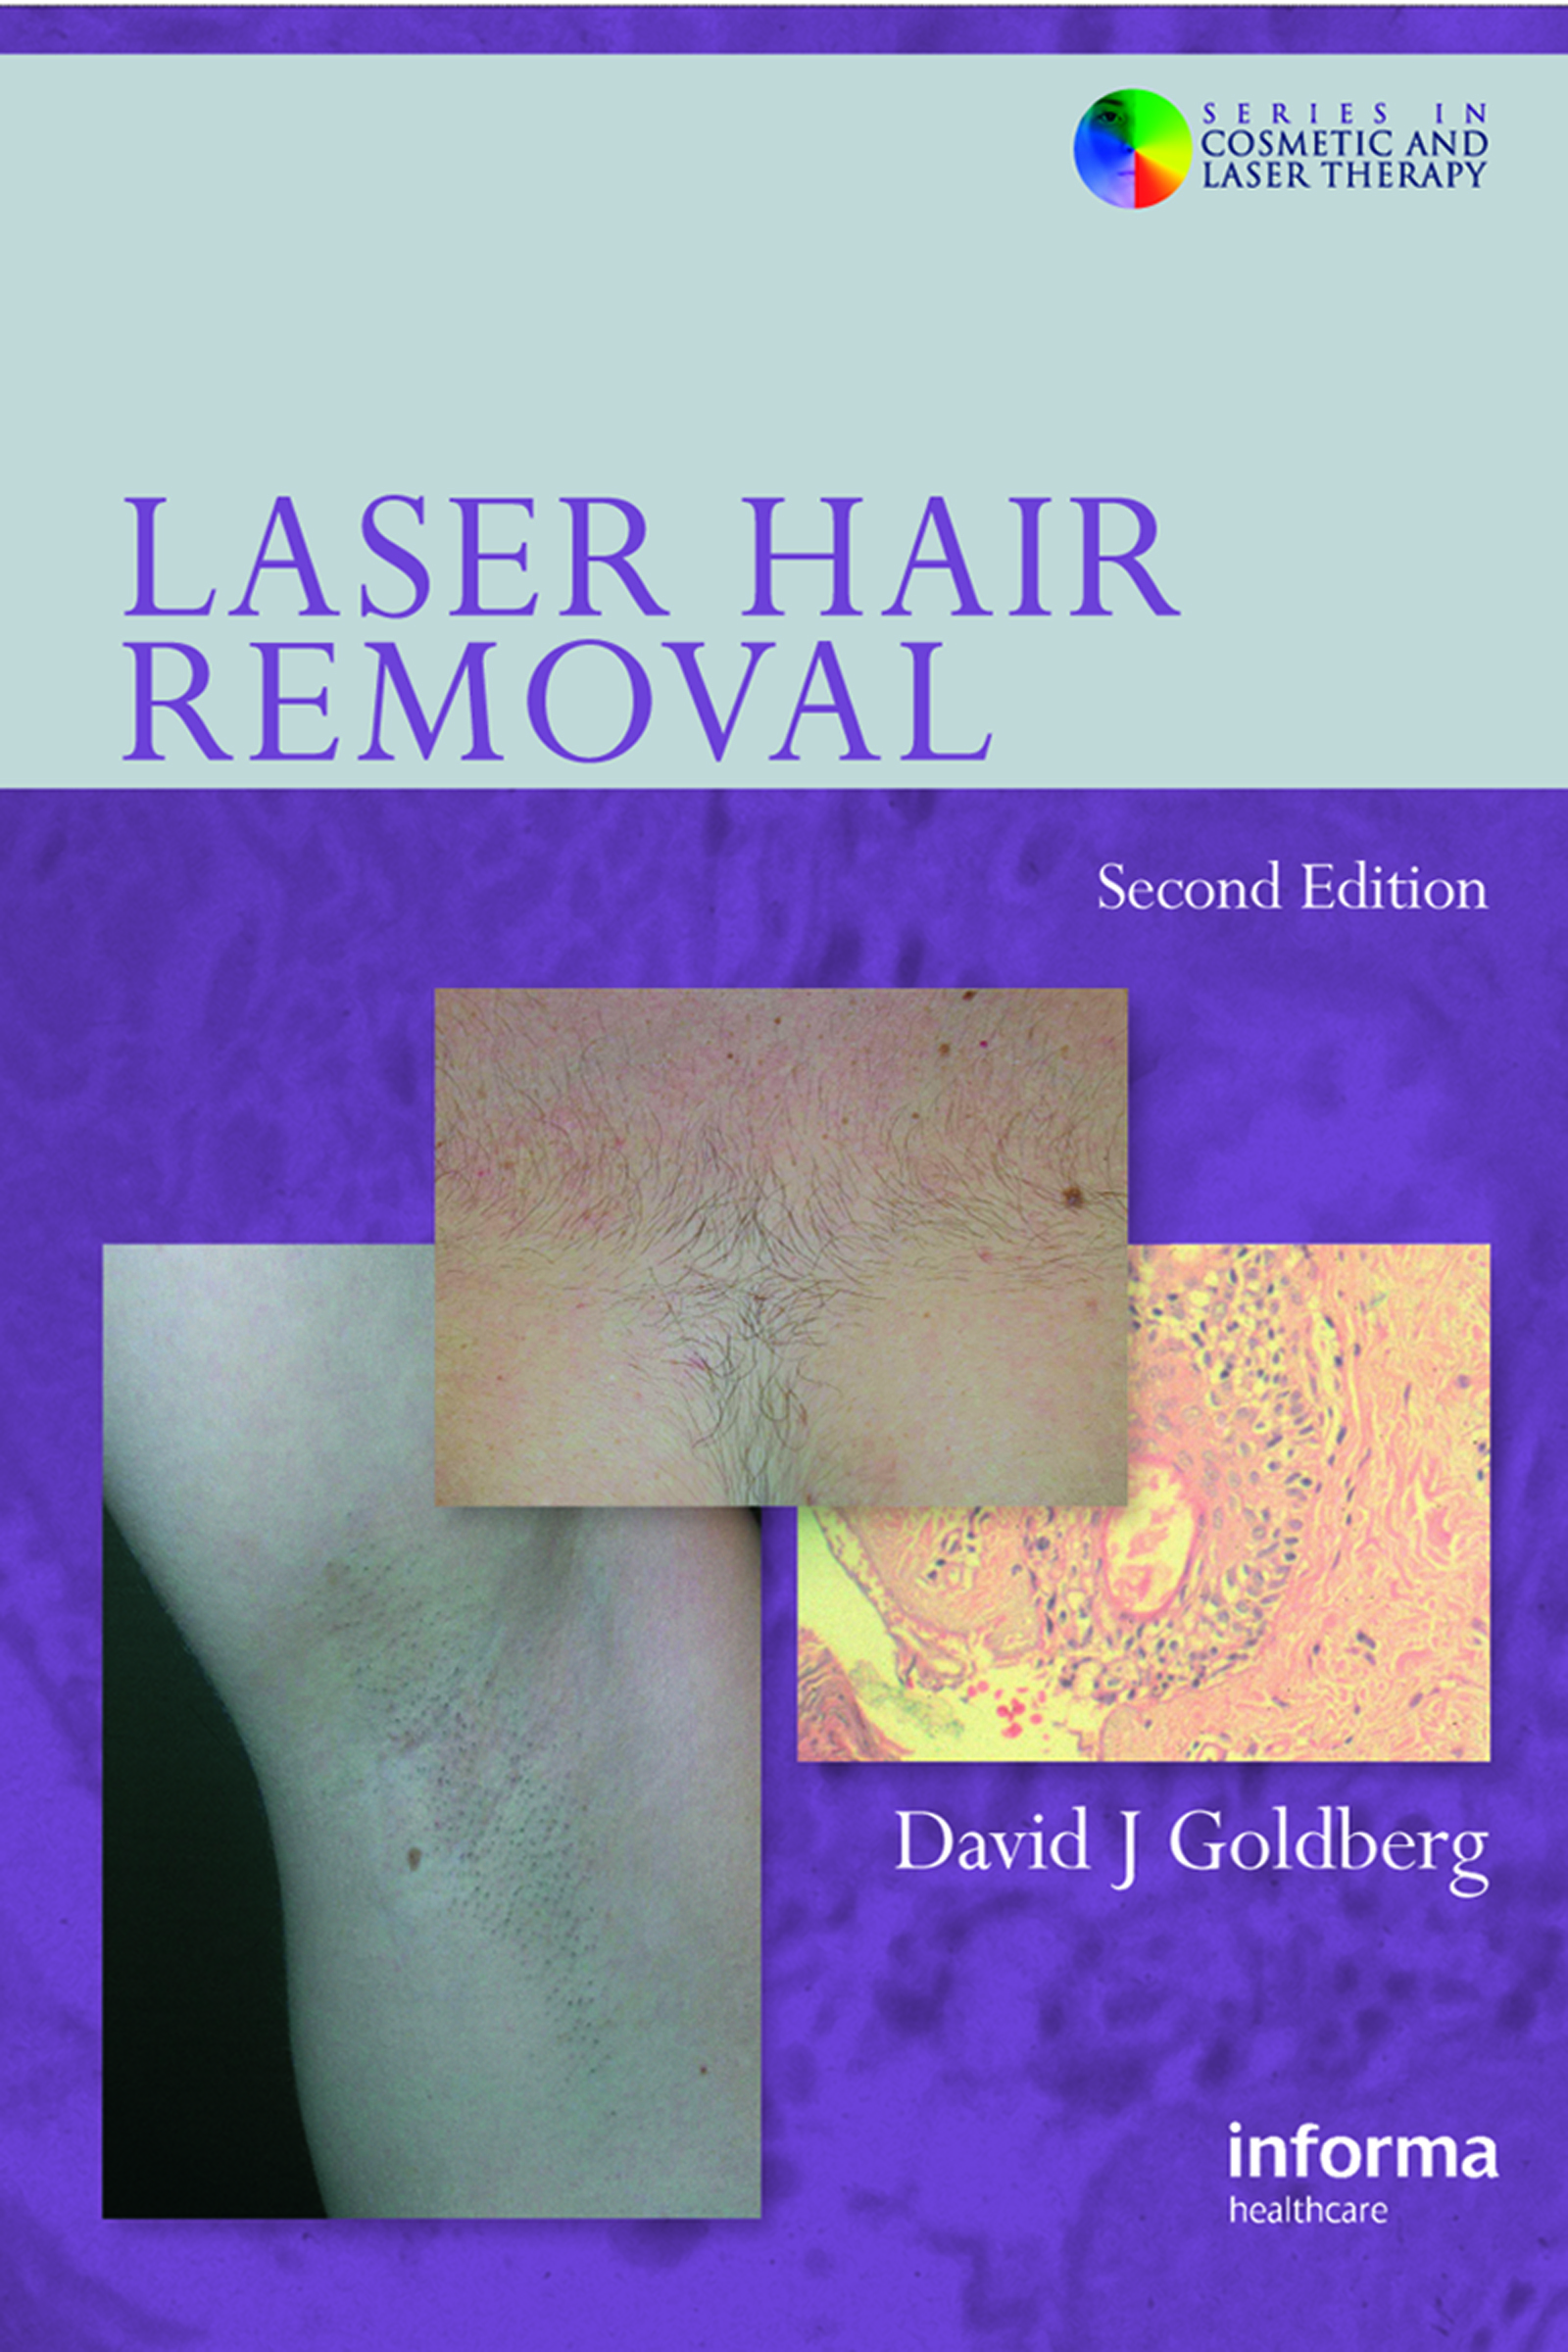 Laser Hair Removal, Second Edition